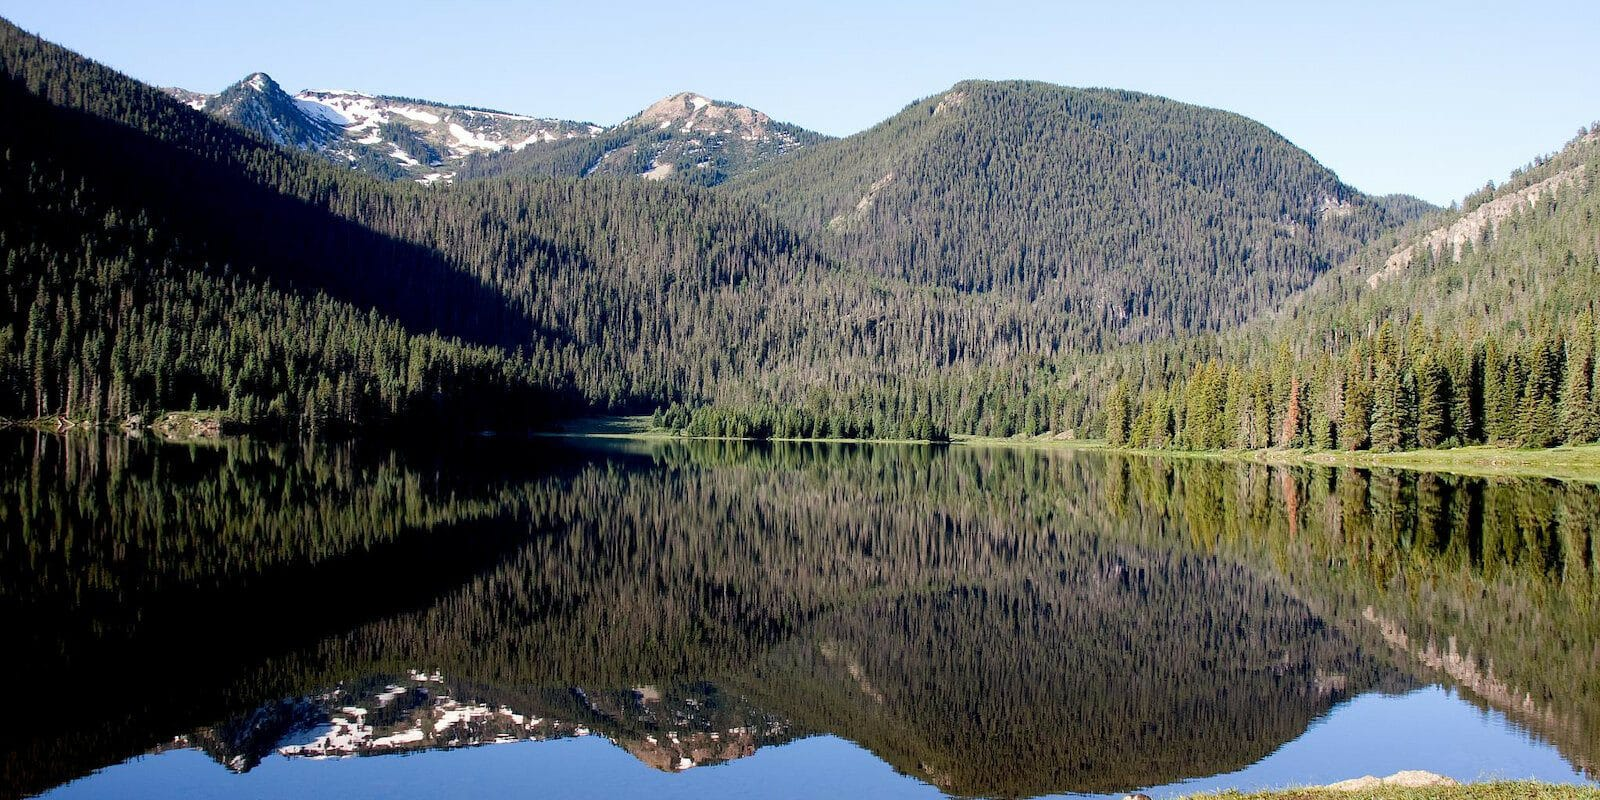 Image of the Big meadows Reservoir SWA in South Fork, Colorado